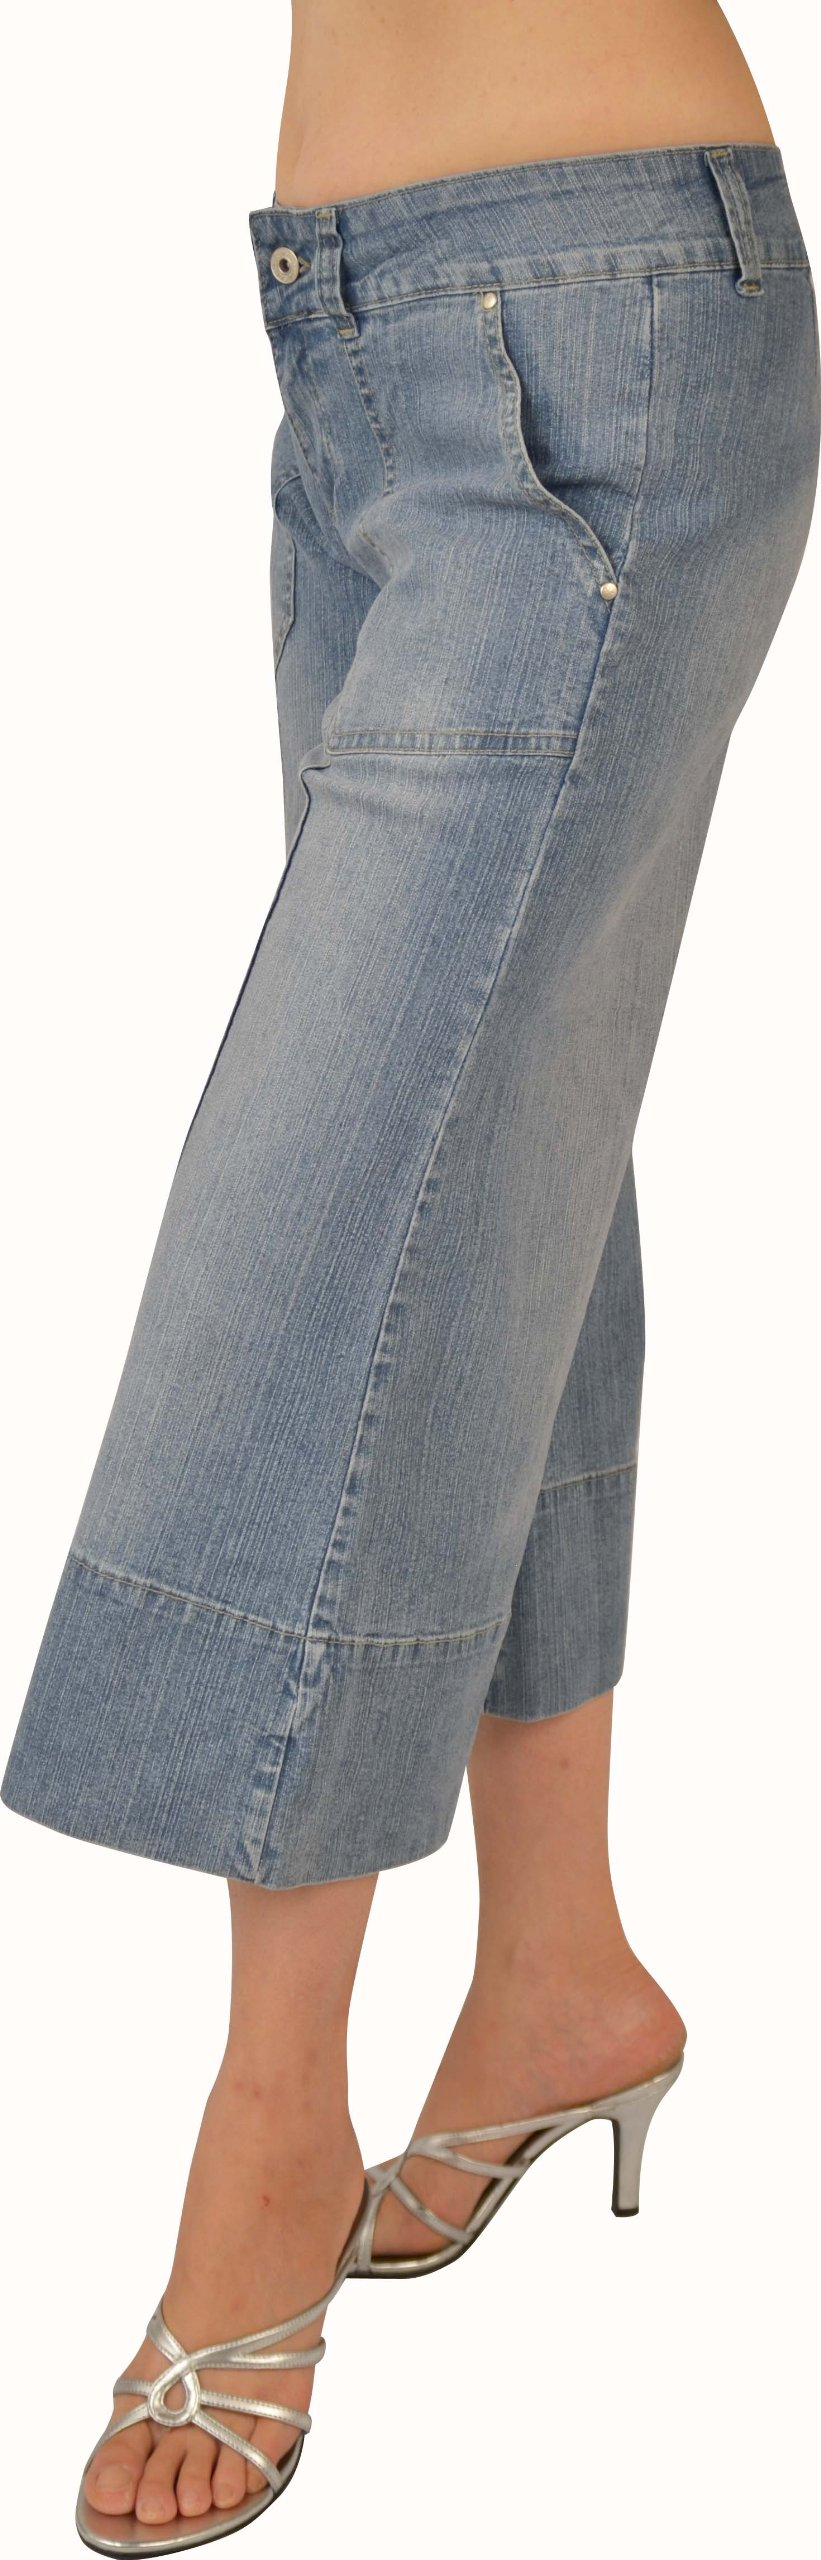 Kit Womens Lt. Sand Blue Stretch Denim Gaucho #L217 Size: 9 by KEEP IN TOUCH (Image #3)